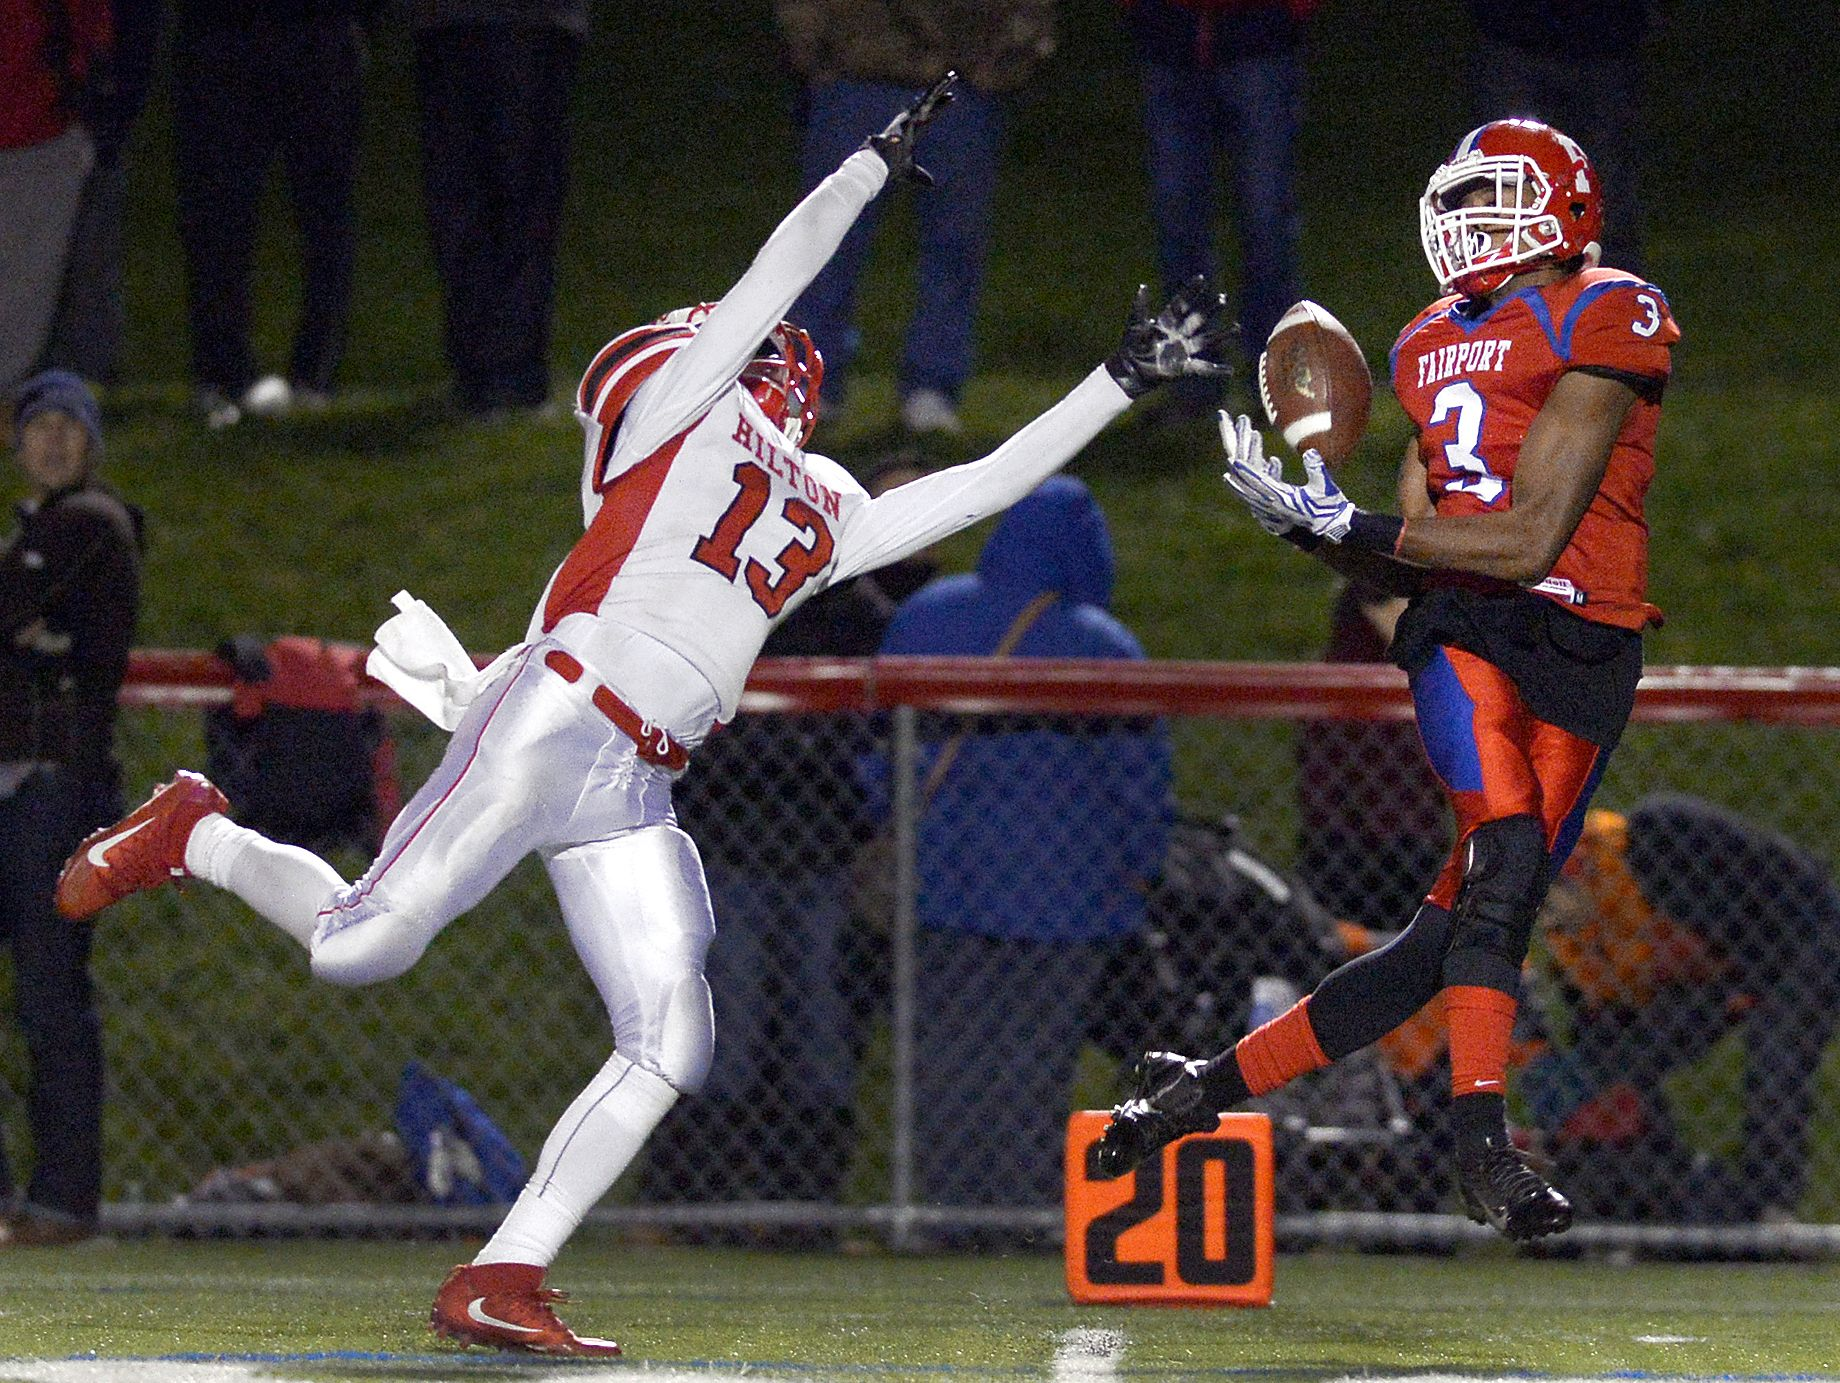 Fairport's Beeshawn Curry, right, tries to haul in this pass while being defended by Hilton's Joseph Sach during a regular-season game. The third-seeded Red Raiders face No. 3 Pittsford in the Section V Class AA semifinals at 4 p.m. Sunday at Rhinos Stadium.